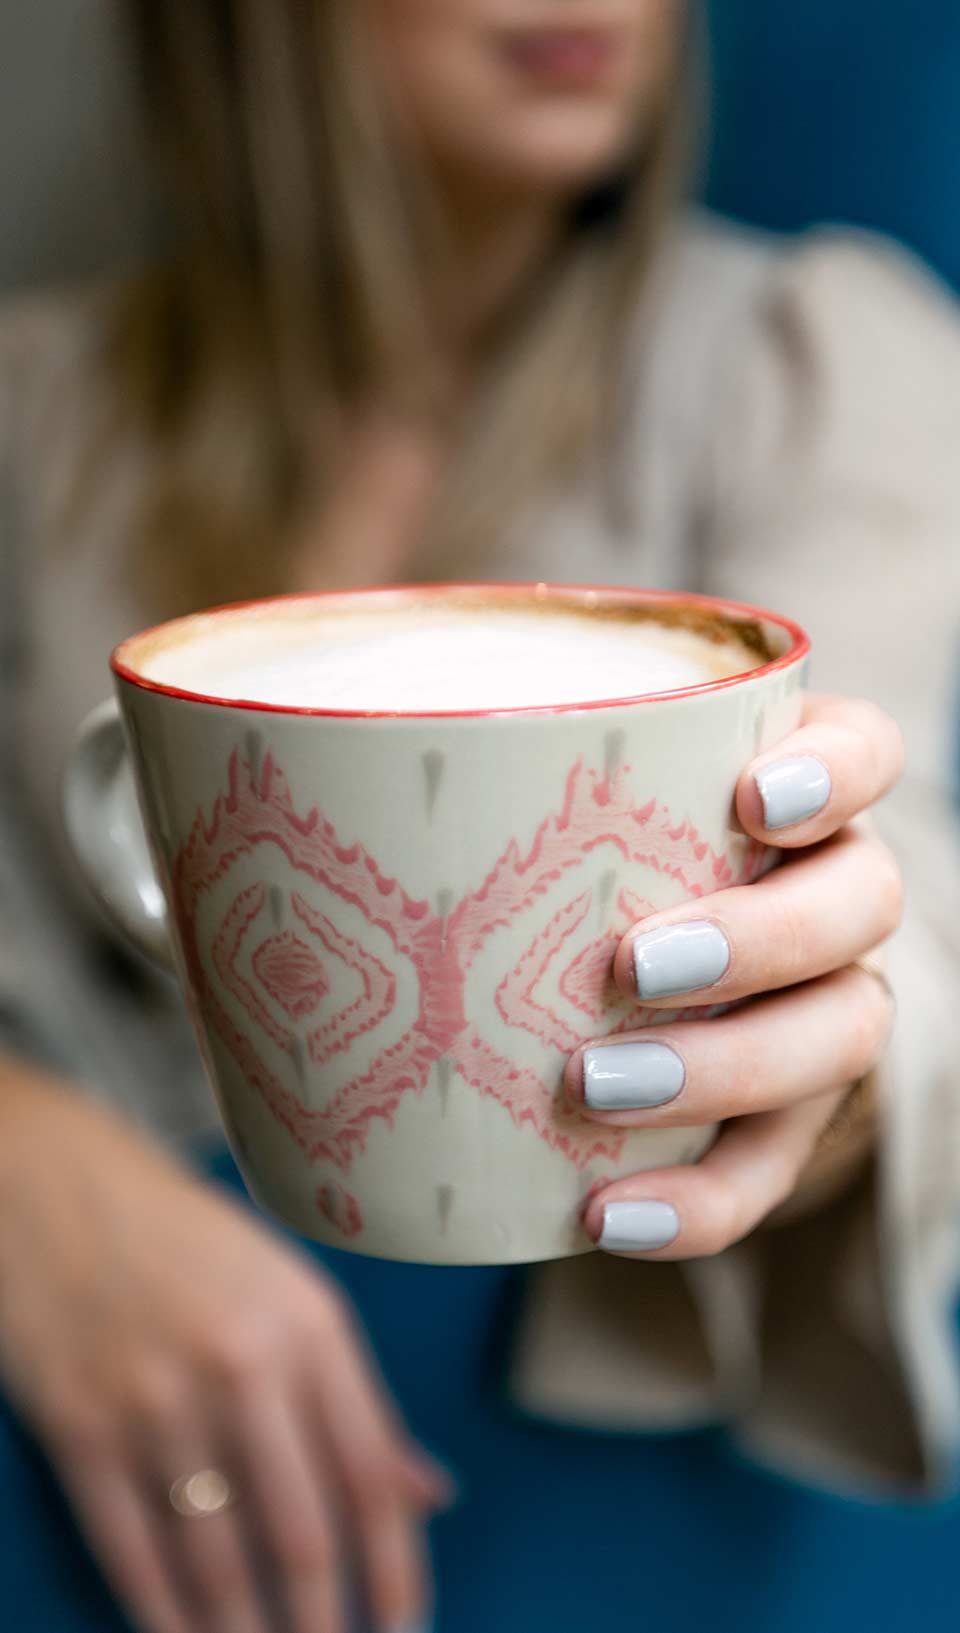 Painted nails holding cup of coffee